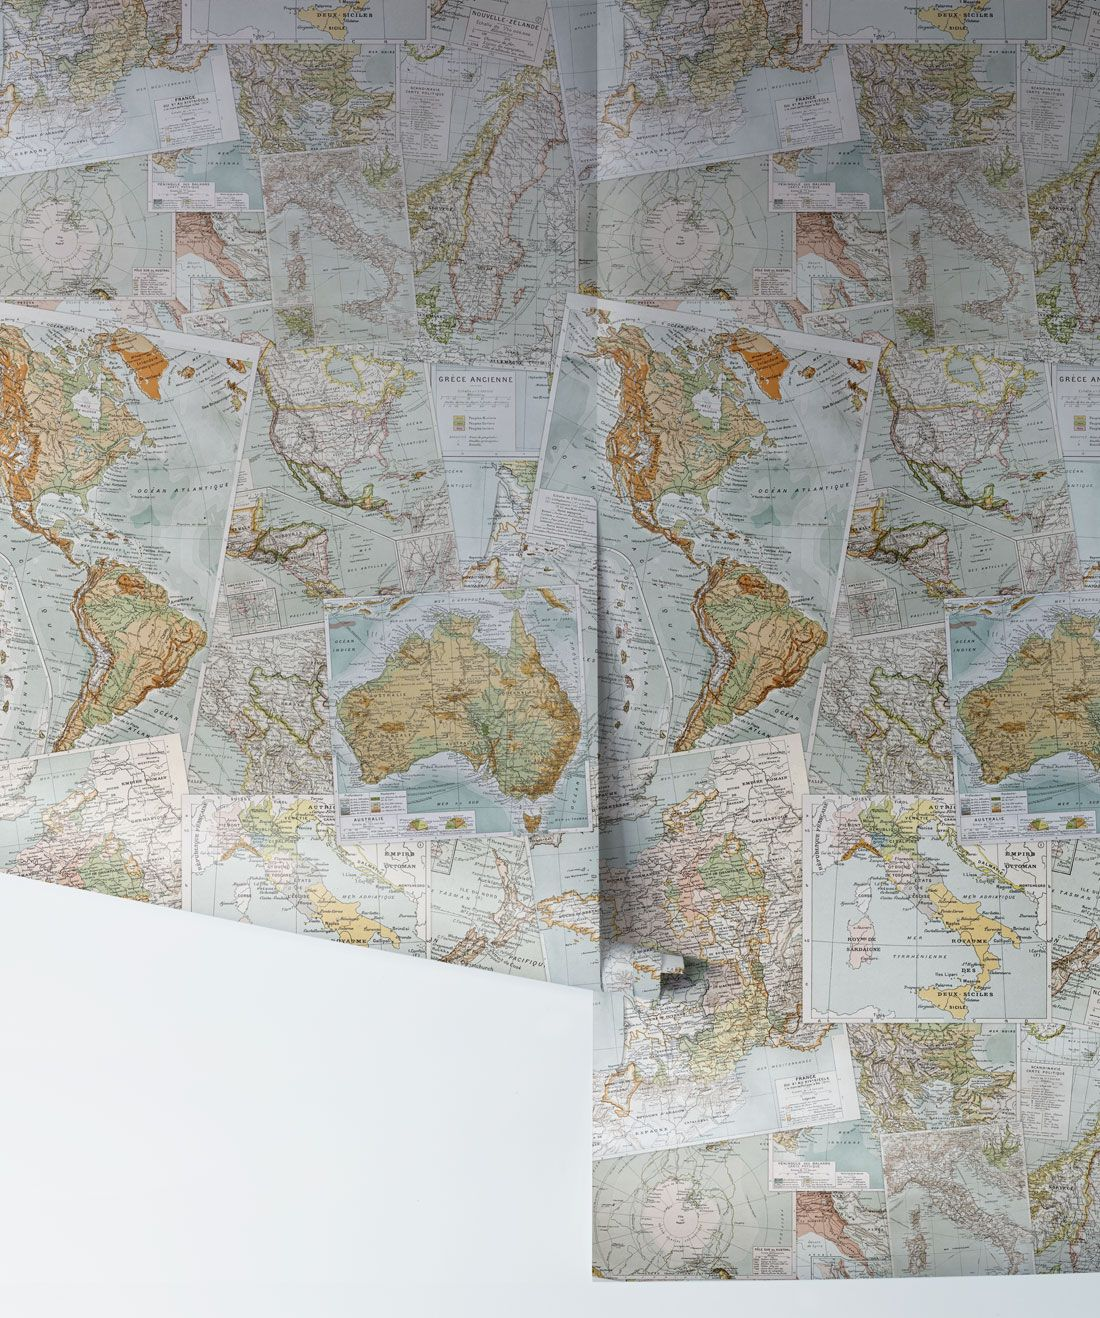 Vintage French Maps Wallpaper Contemporary Milton King Uk In 2020 Map Wallpaper Wallpaper French Vintage